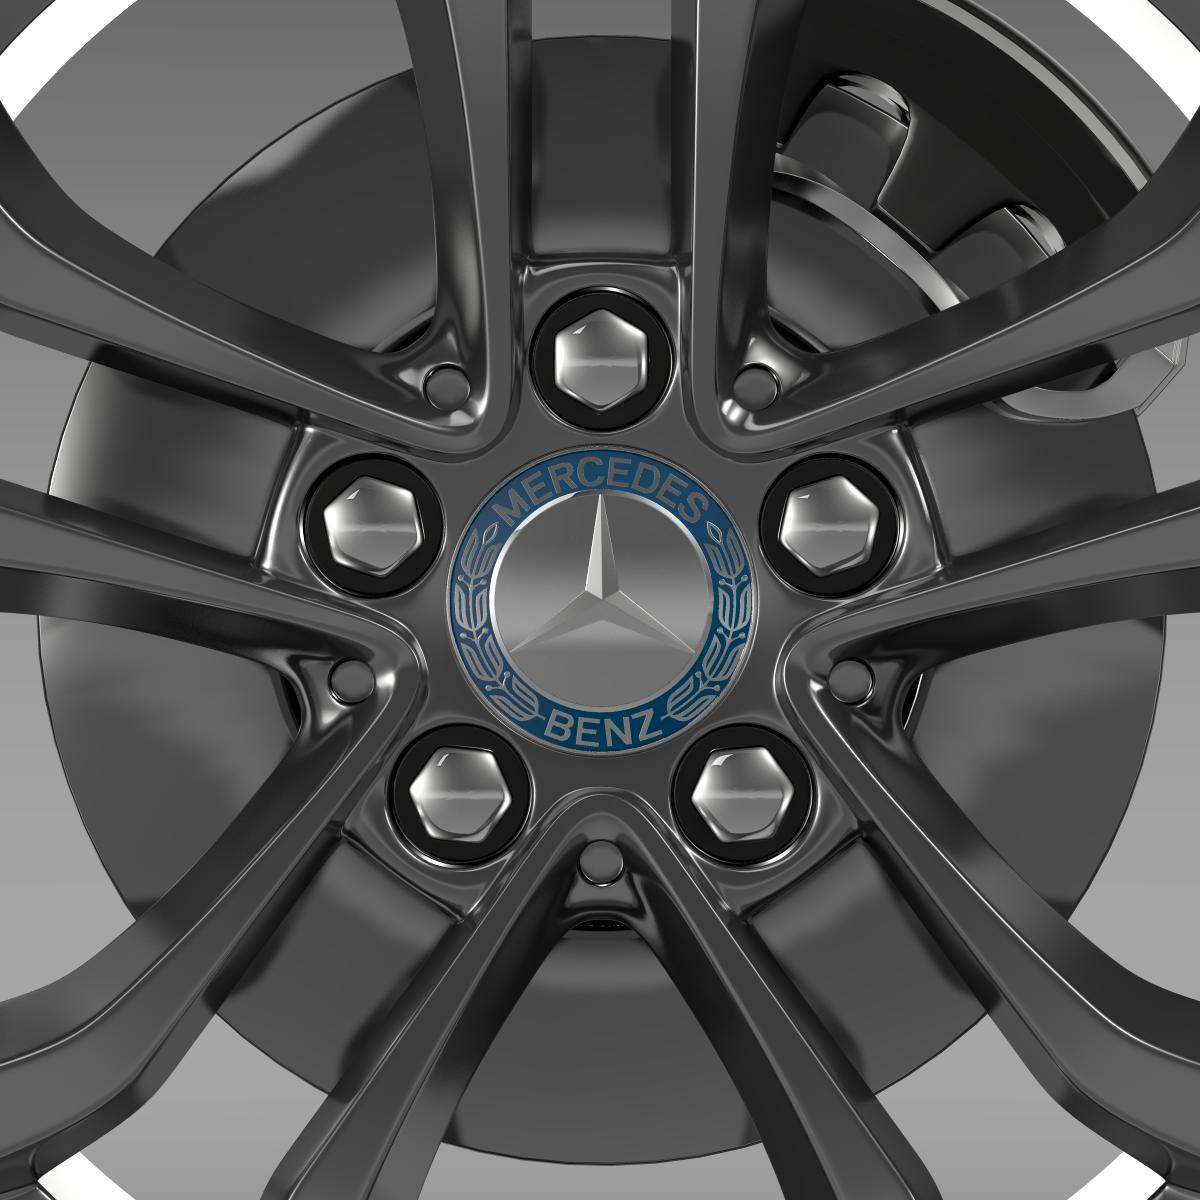 mercedes benz c 220 wheel 3d model 3ds max fbx c4d lwo ma mb hrc xsi obj 210760